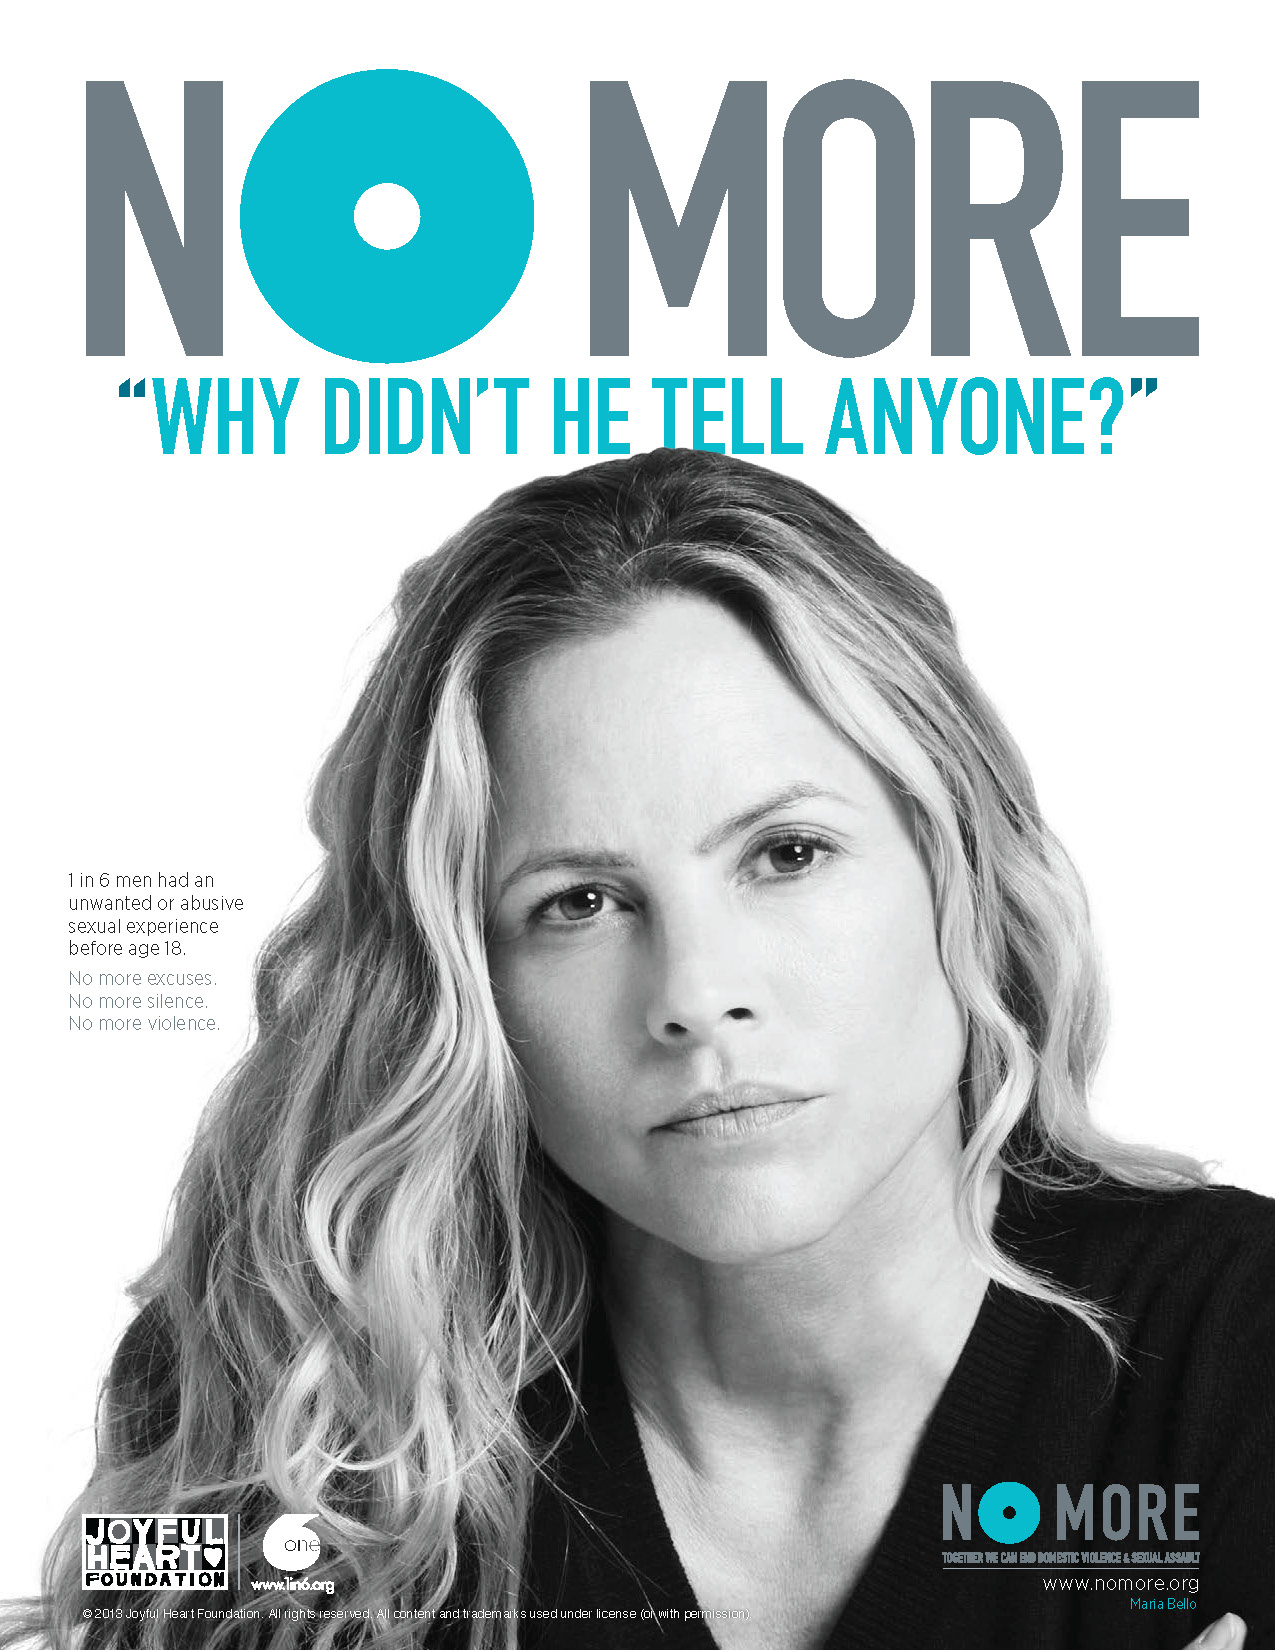 NO MORE Print Ads - NOMORE.org | Together we can end domestic ...